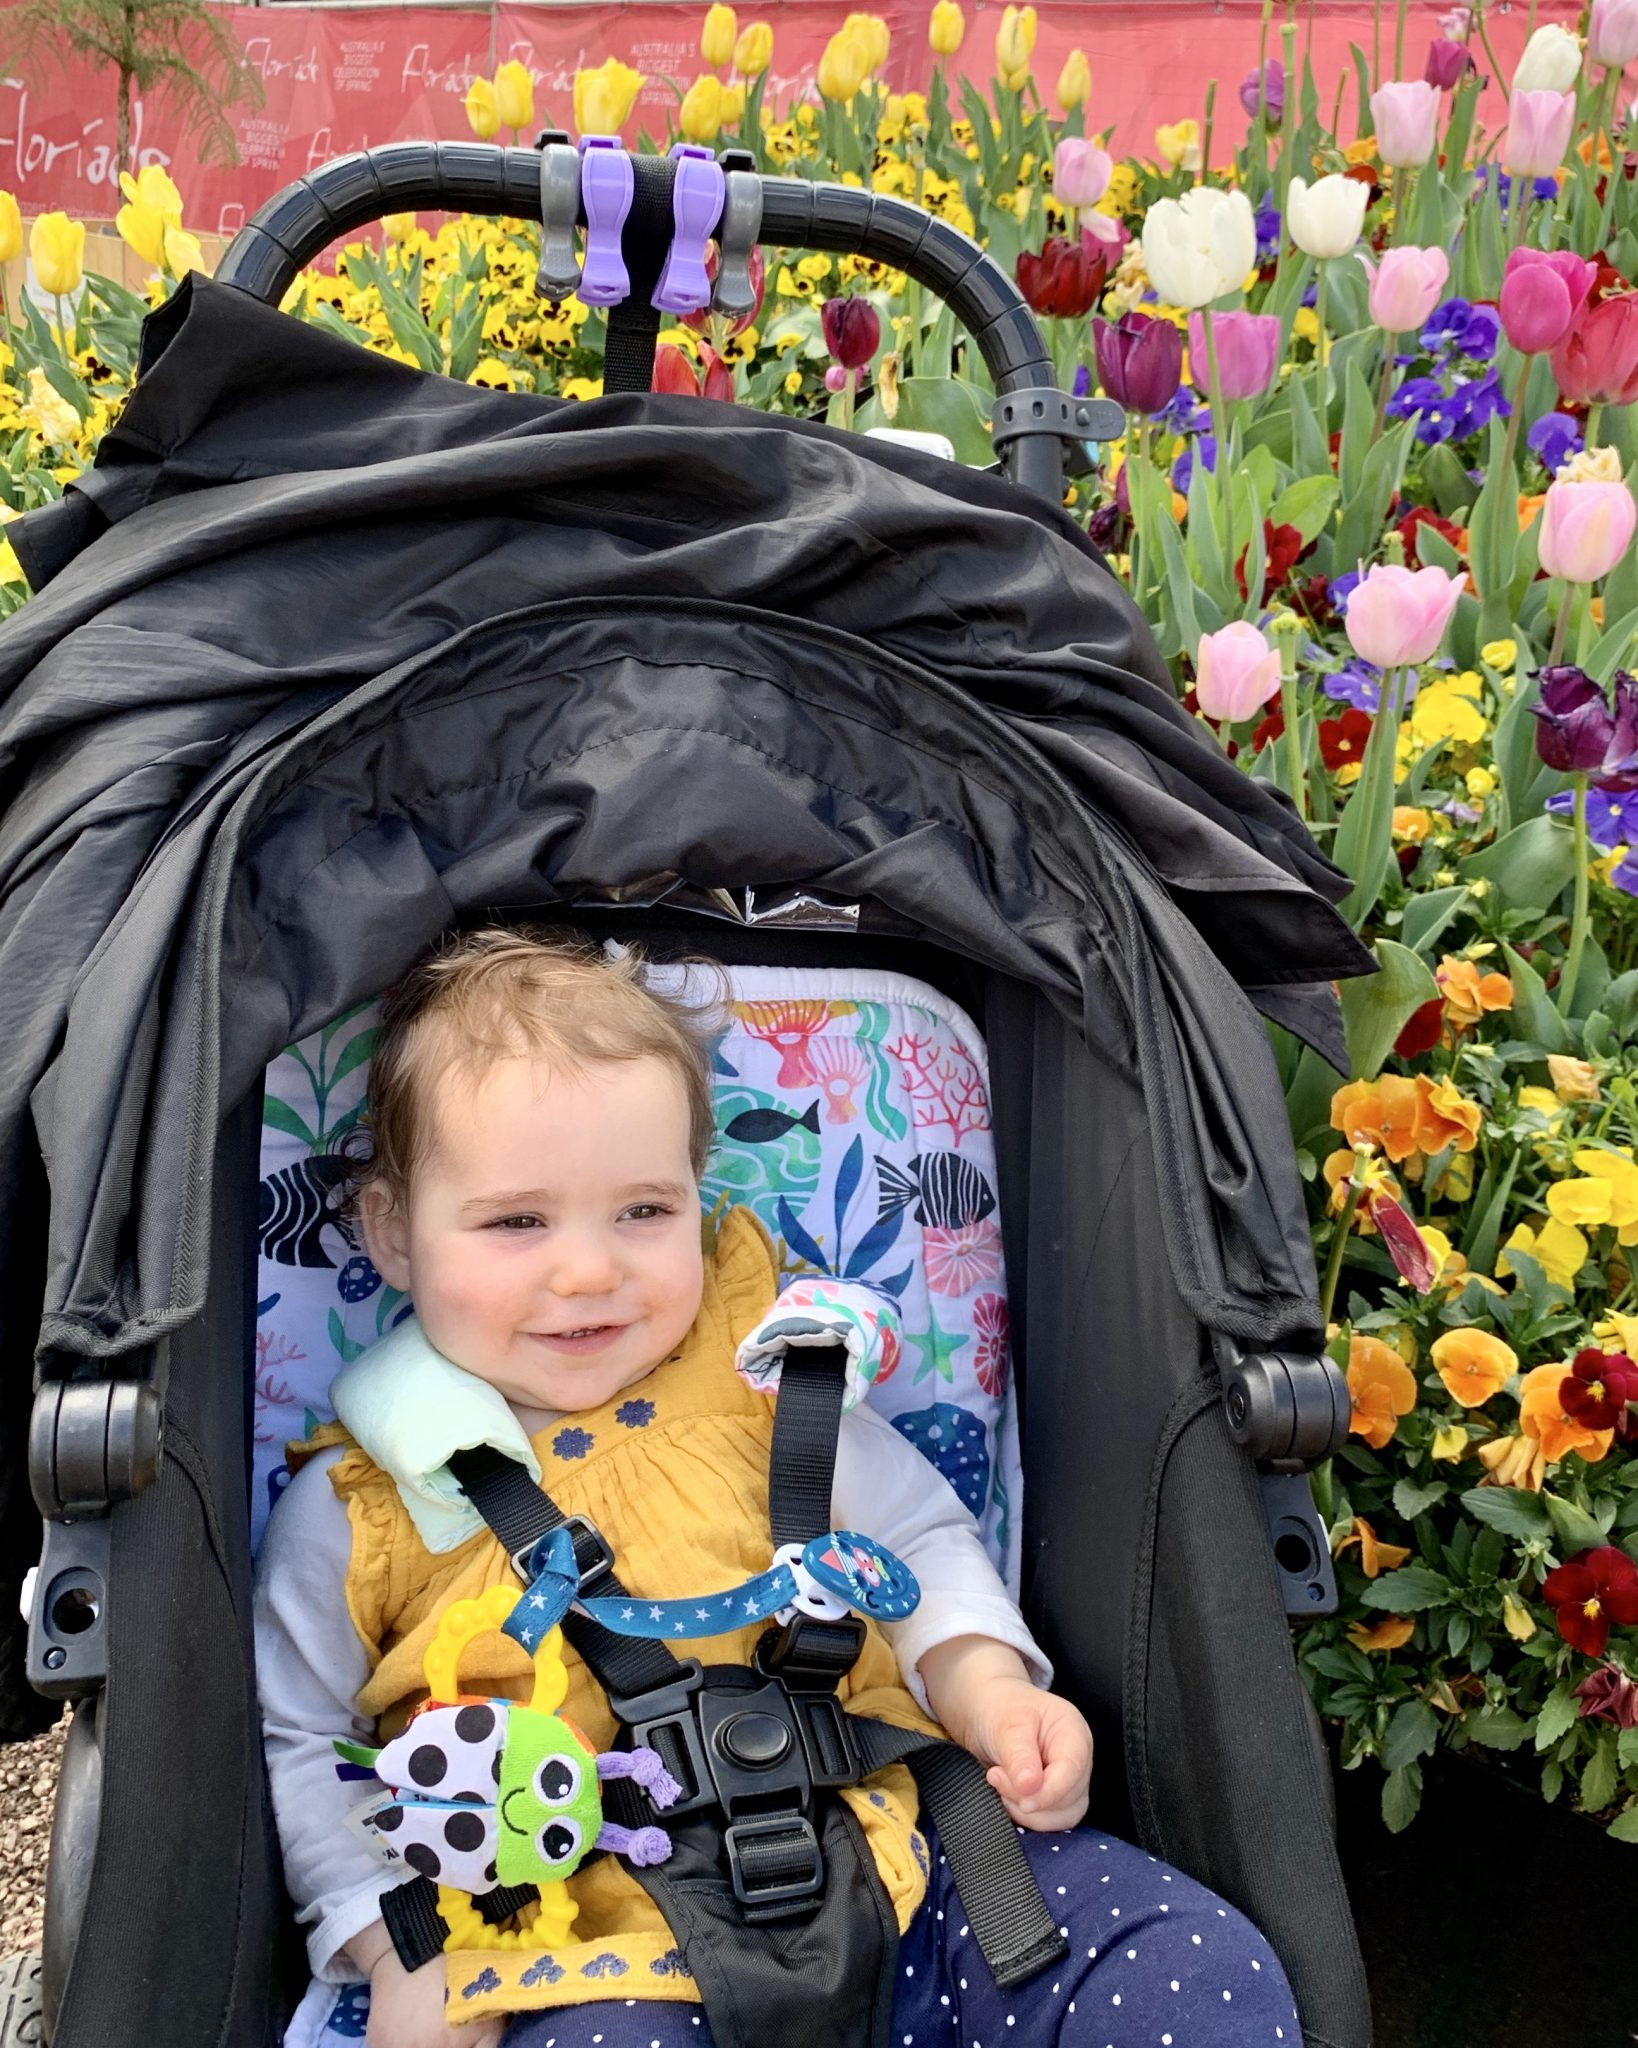 Emilia enjoyed the pretty flowers at Floriade